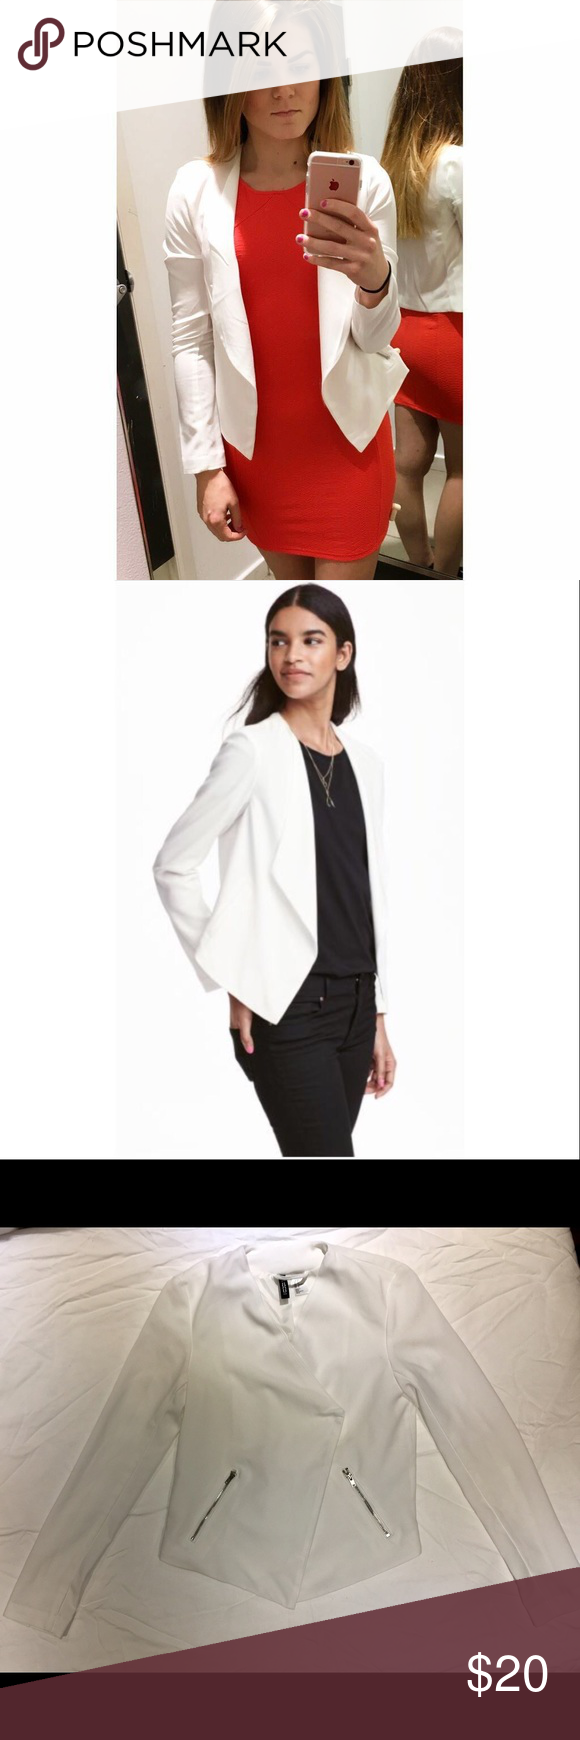 Draped blazer-like jacket Worn once! Perfect condition draped jacket. Blazer style. Can be worn while dressing up, or casually with jeans.  NO LOW BALL OFFERS PLEASE!  Thank you in advanced! H&M Jackets & Coats